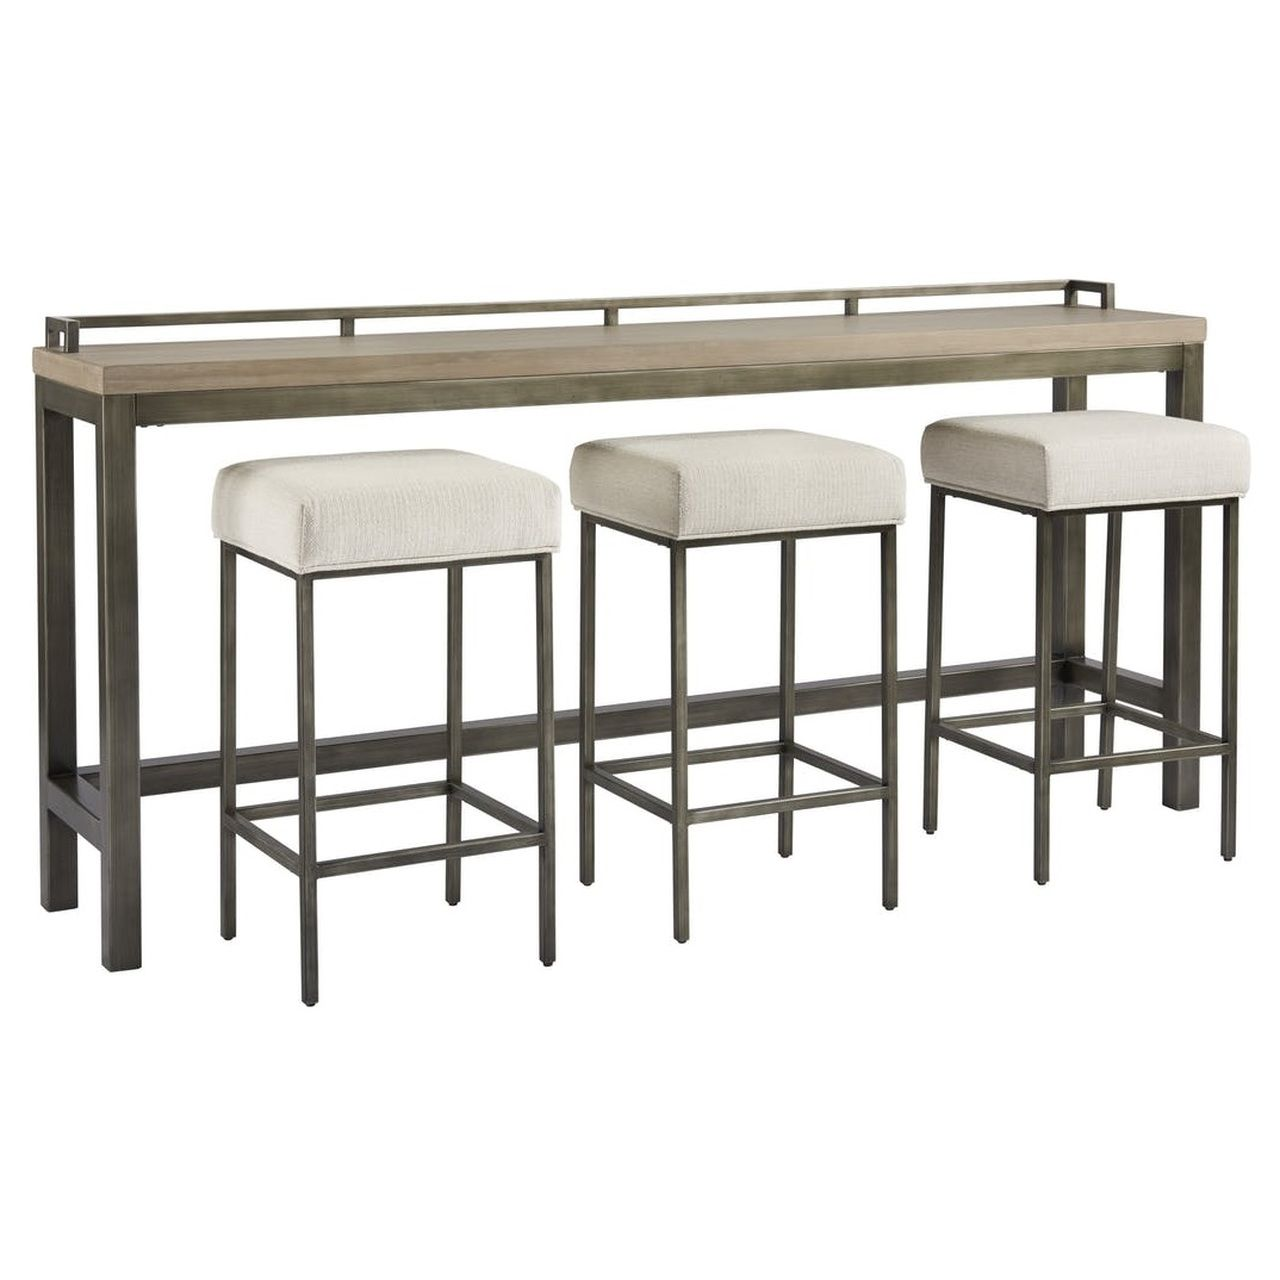 Mitchell 4 Pc Counter Height Table Set In 2020 Counter Height Table Sets Bar Table Behind Couch Table Behind Couch